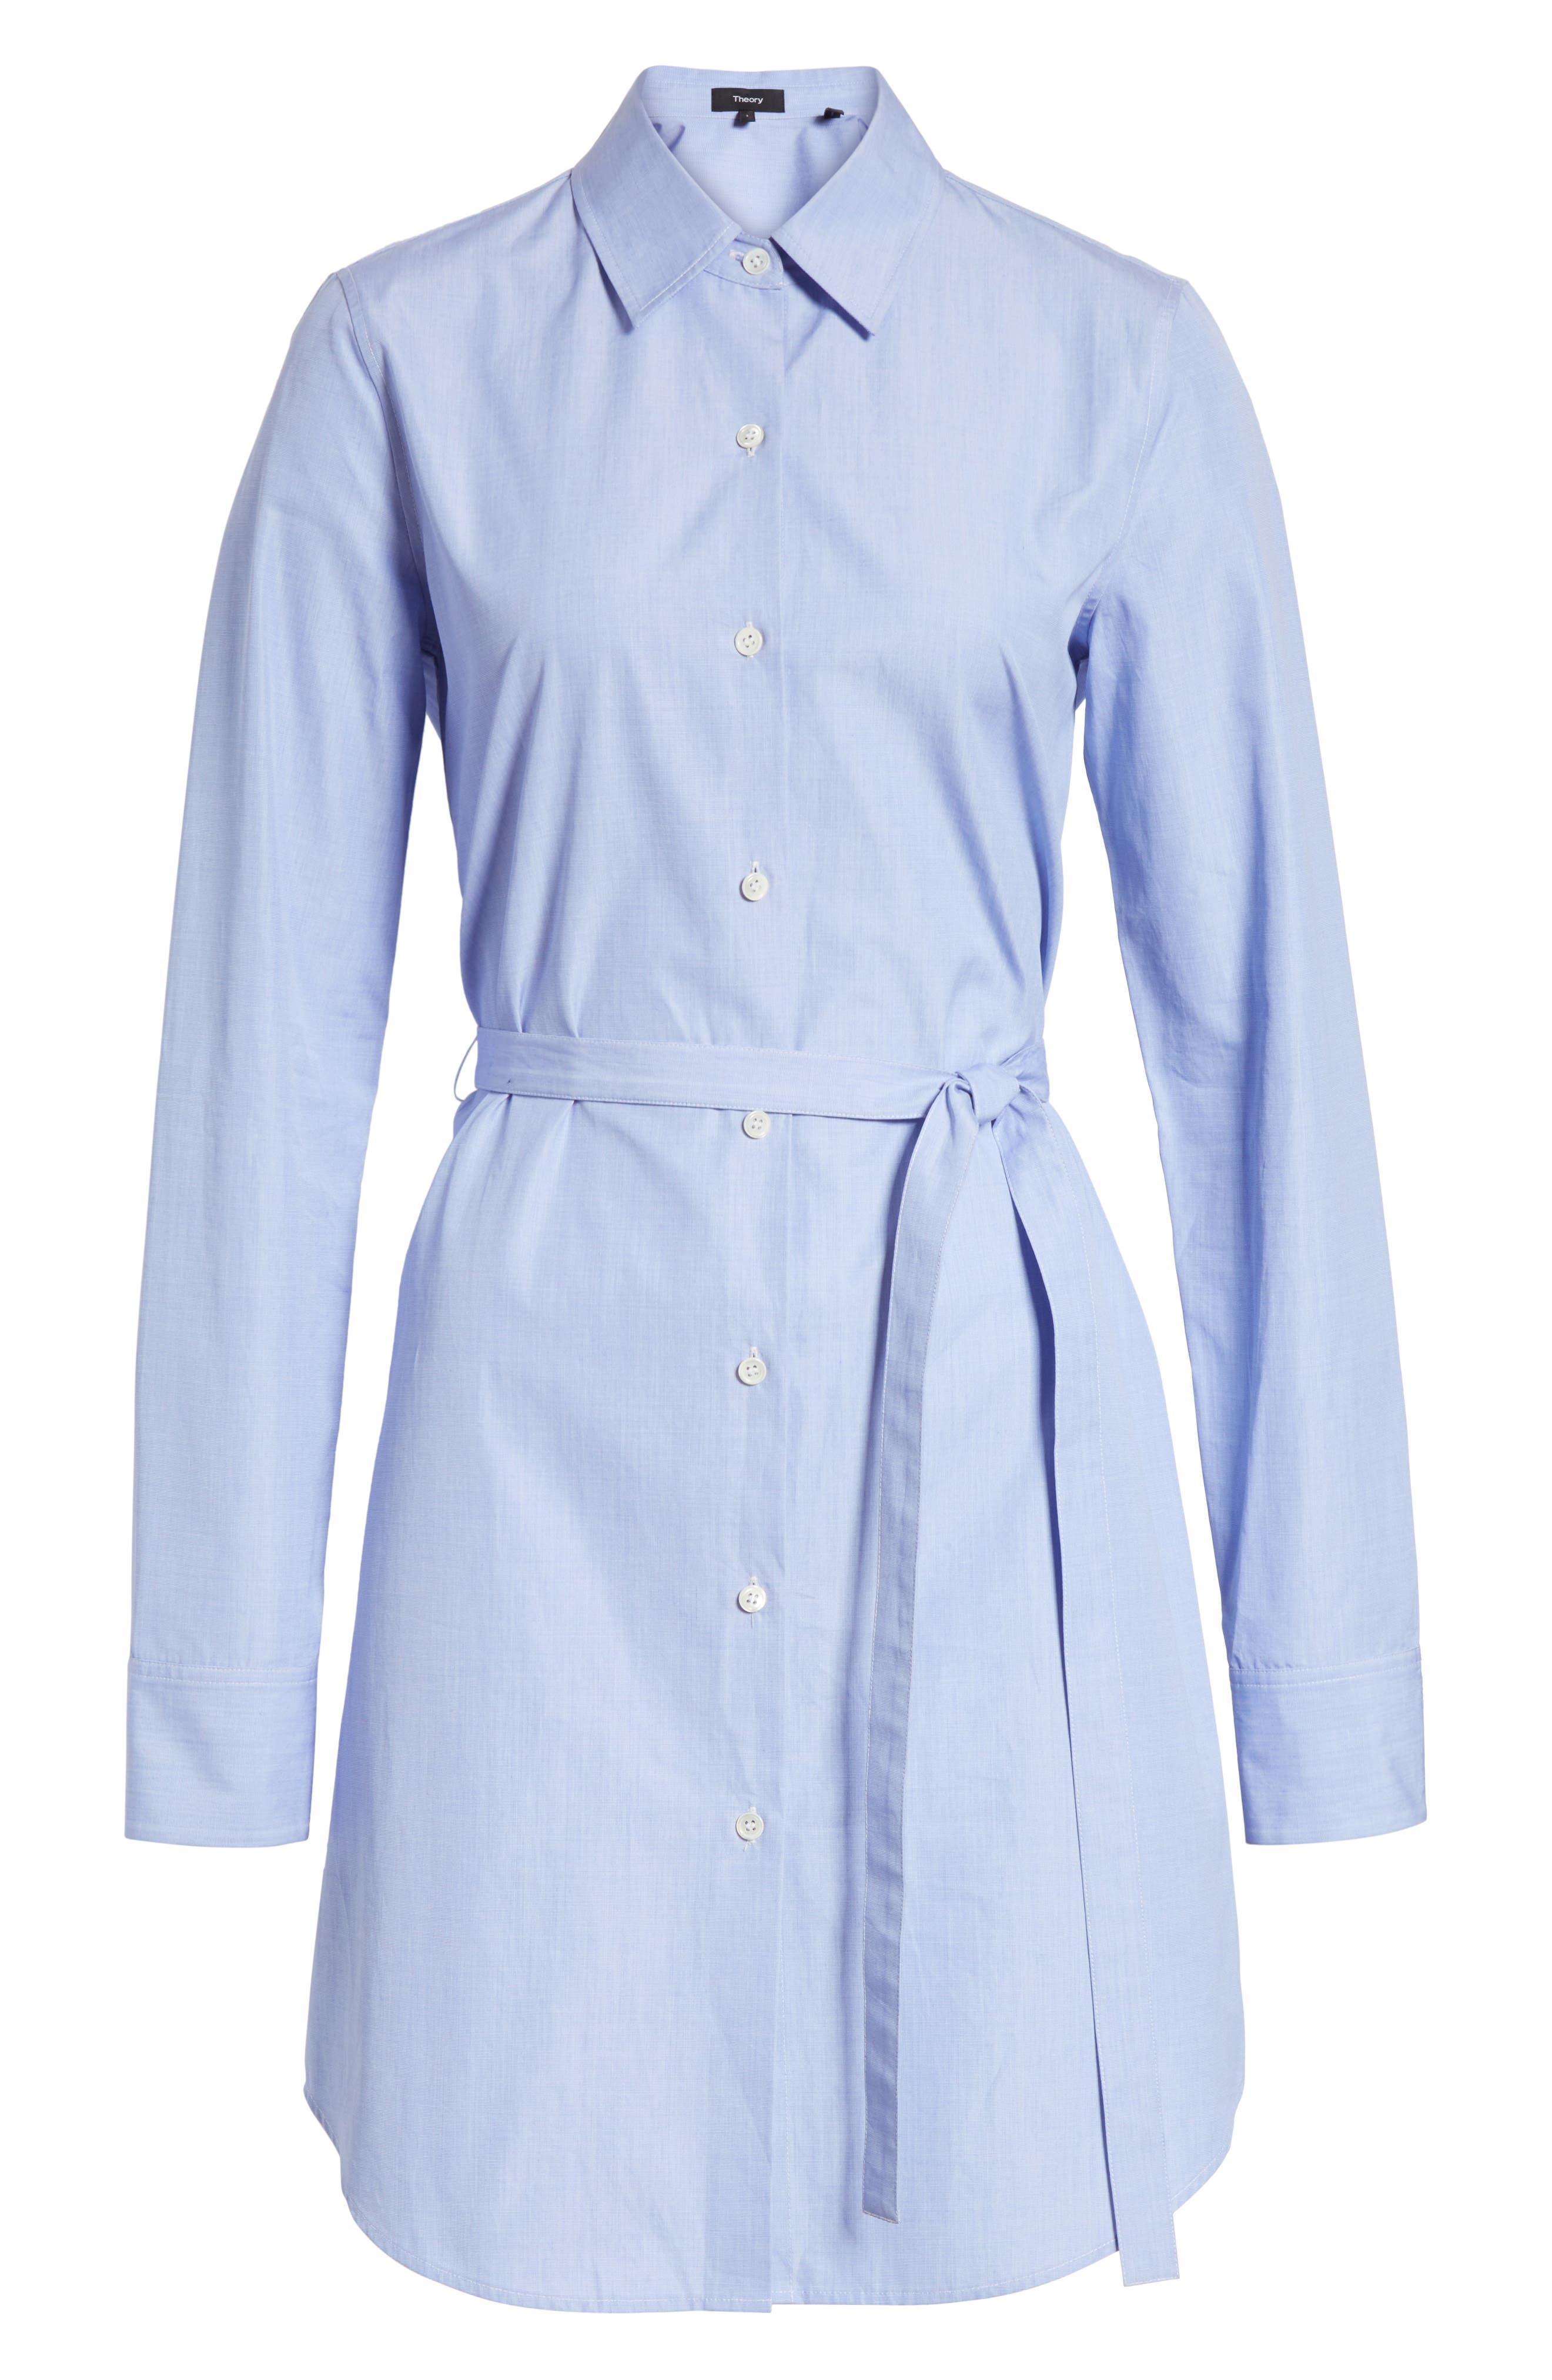 Crowley Cotton Shirtdress,                             Alternate thumbnail 6, color,                             473